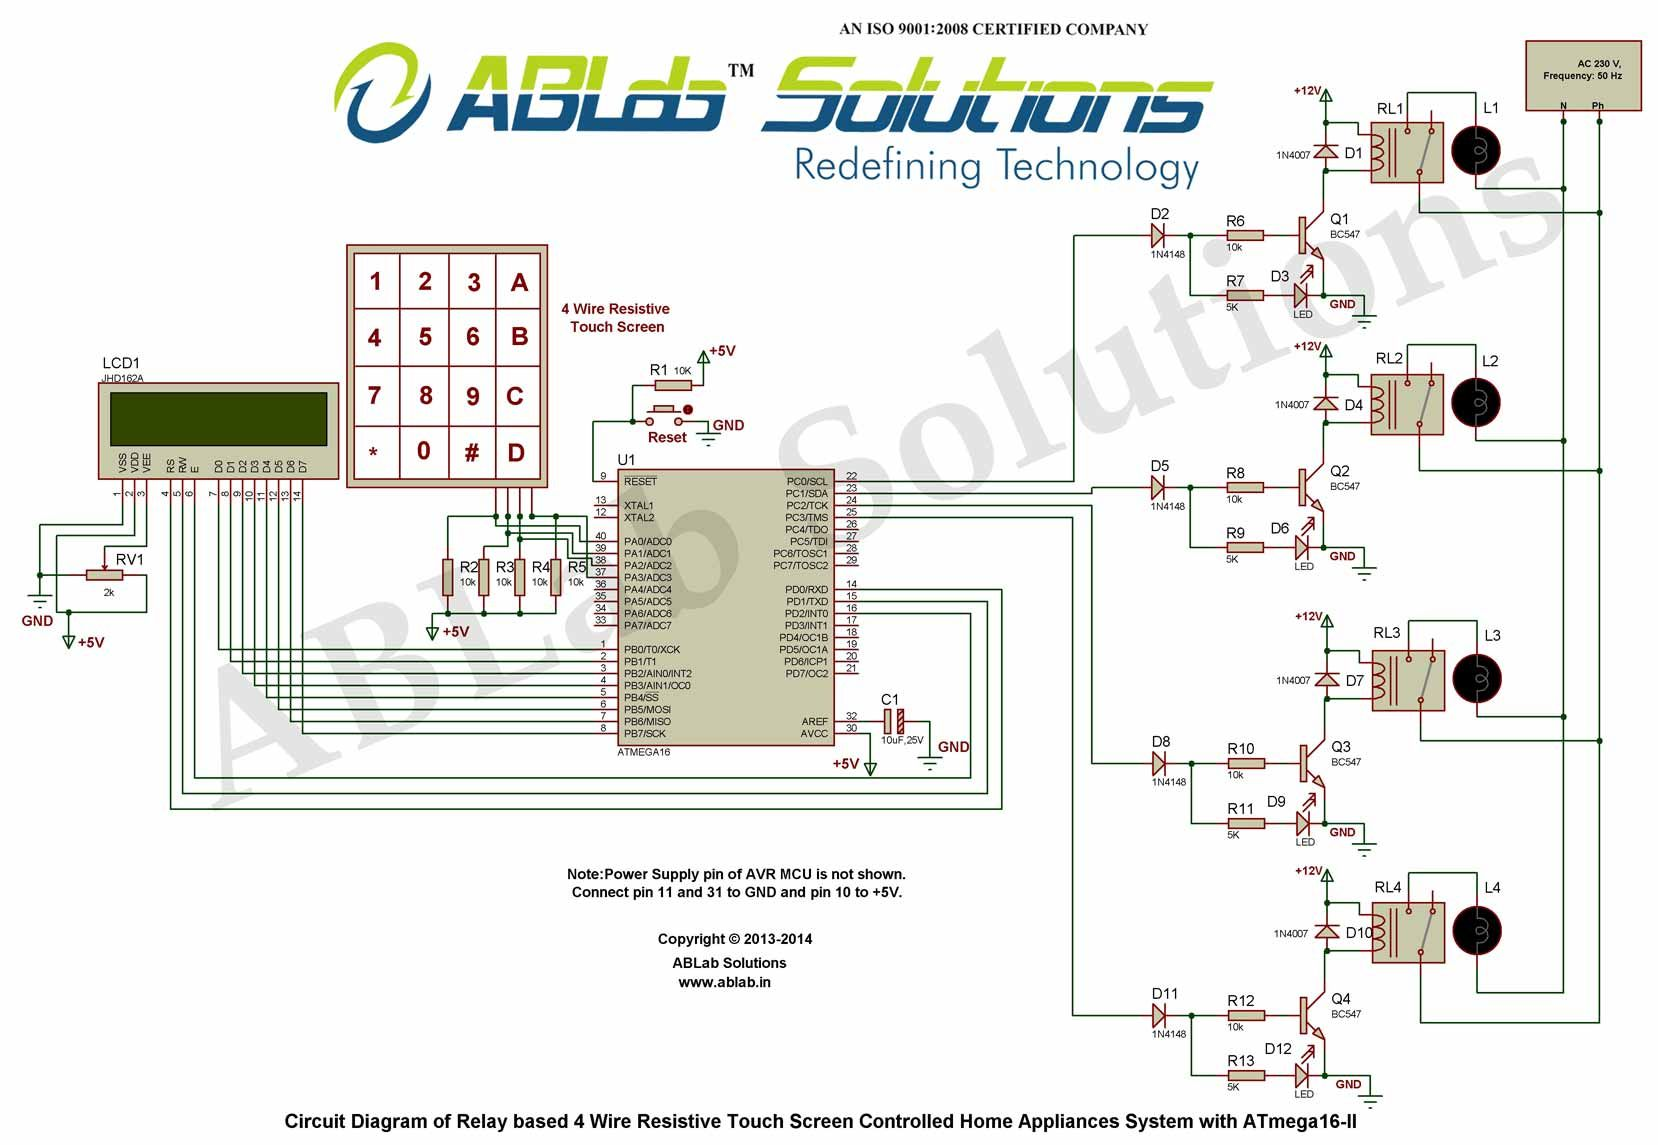 Relay-based-4-Wire-Resistive-Touch-Screen-Controlled-Home-Appliances-System-with-AVR  ATmega16 Microcontroller-II Circuit Diagram